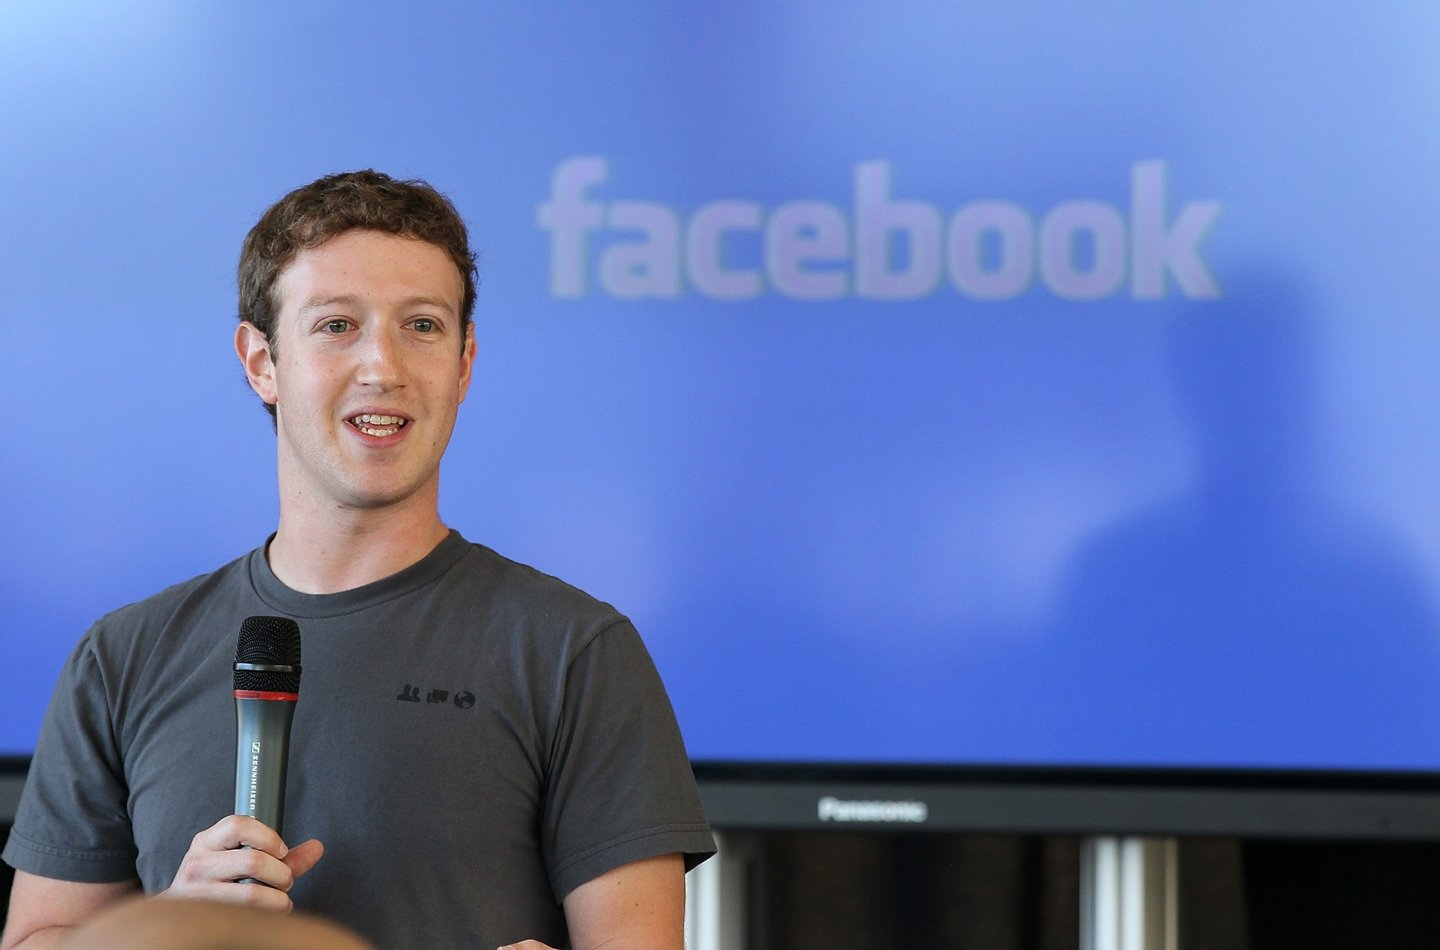 SAN FRANCISCO - NOVEMBER 15: Facebook founder and CEO Mark Zuckerberg speaks during a special event announcing a new Facebook email messaging system at the St. Regis Hotel on November 15, 2010 in San Francisco, California. Facebook will launch a new messaging system aimed at enhancing it's social media product to its 500 million users. (Photo by Justin Sullivan/Getty Images)